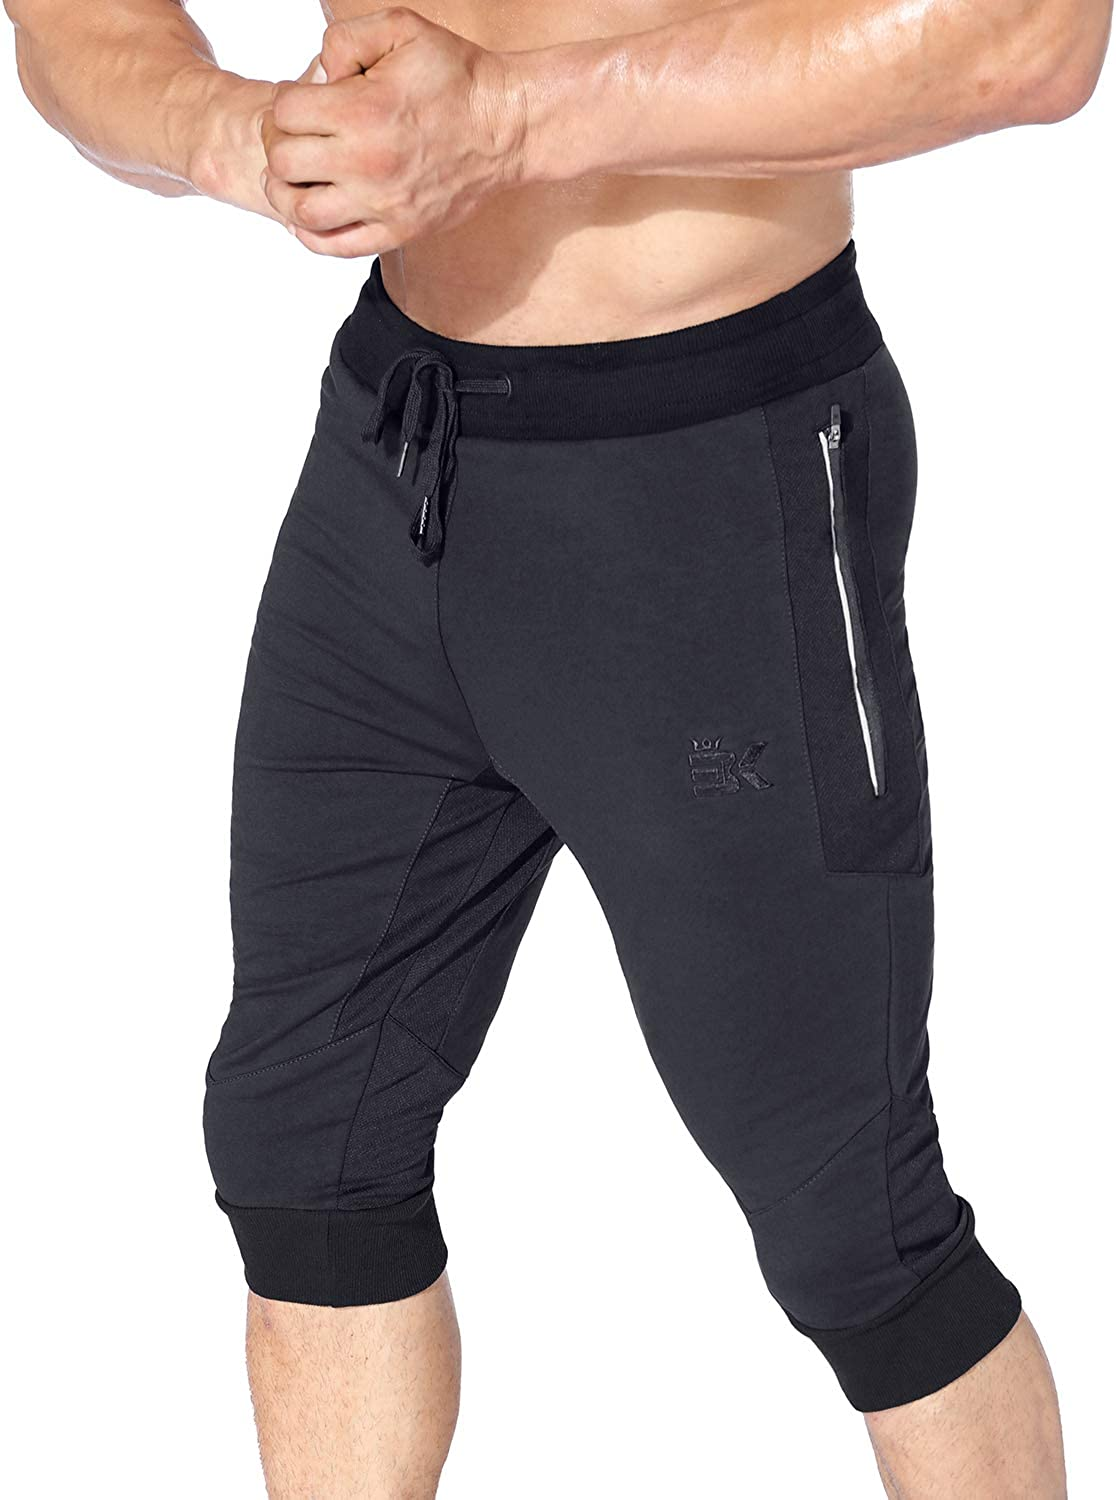 NismeimeihaiGG Brock Lesnar Youth 3D Joggers Pants Trousers Sport Track Sweatpants Baggy